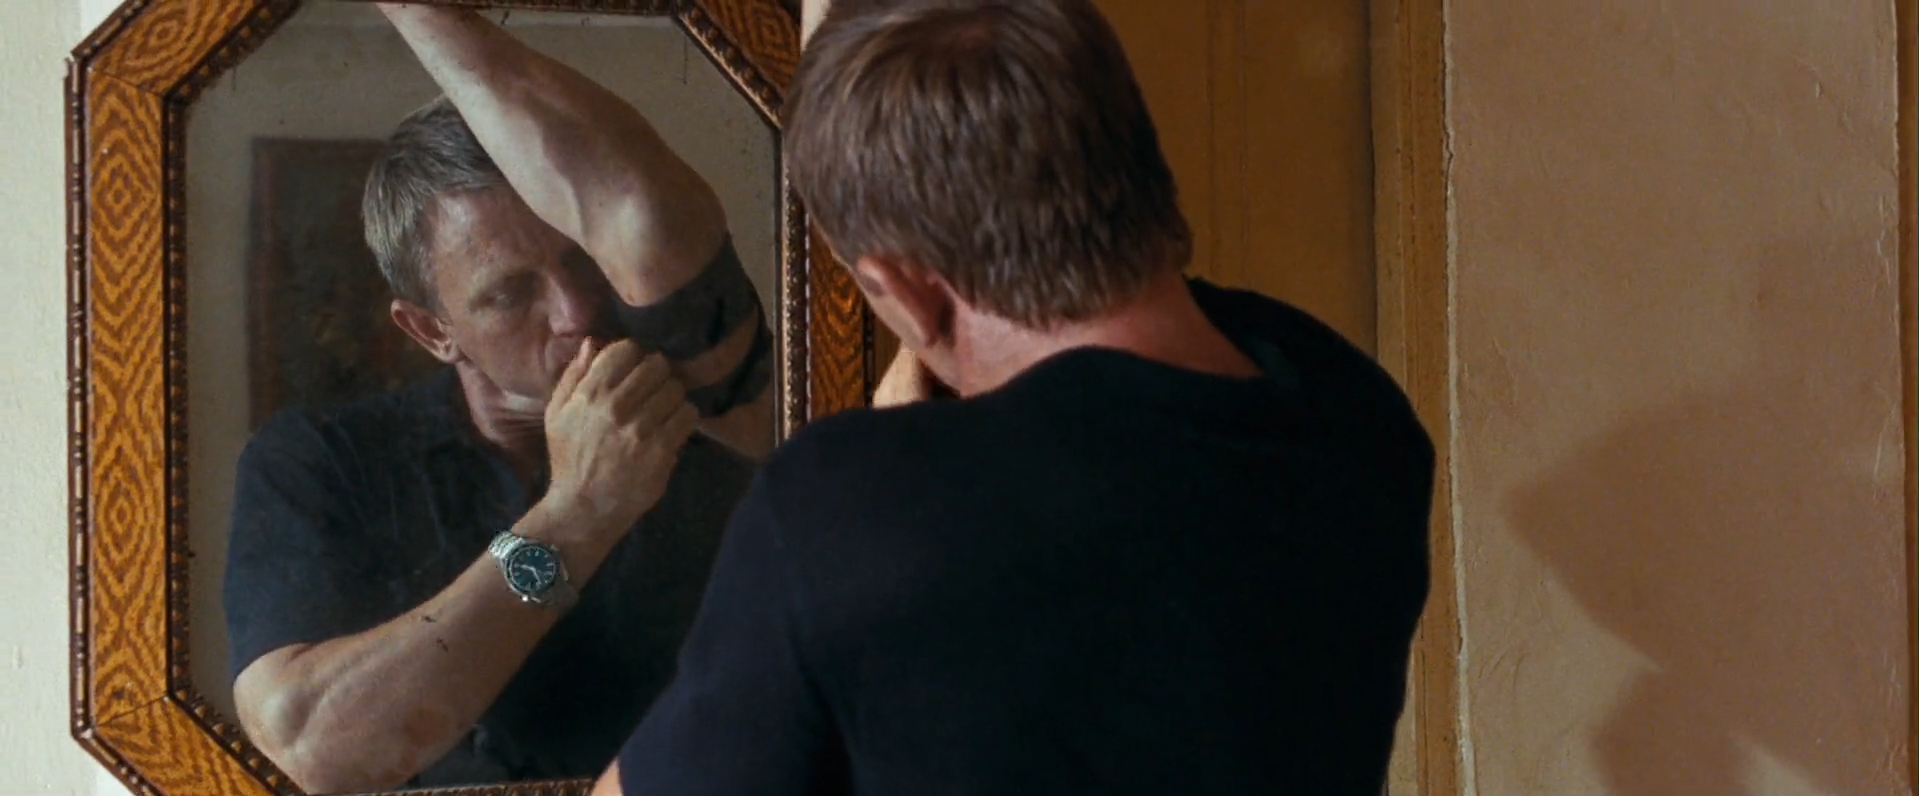 22. Quantum of Solace.mp4 - VLC media player 2017-09-06 11.48.08.png